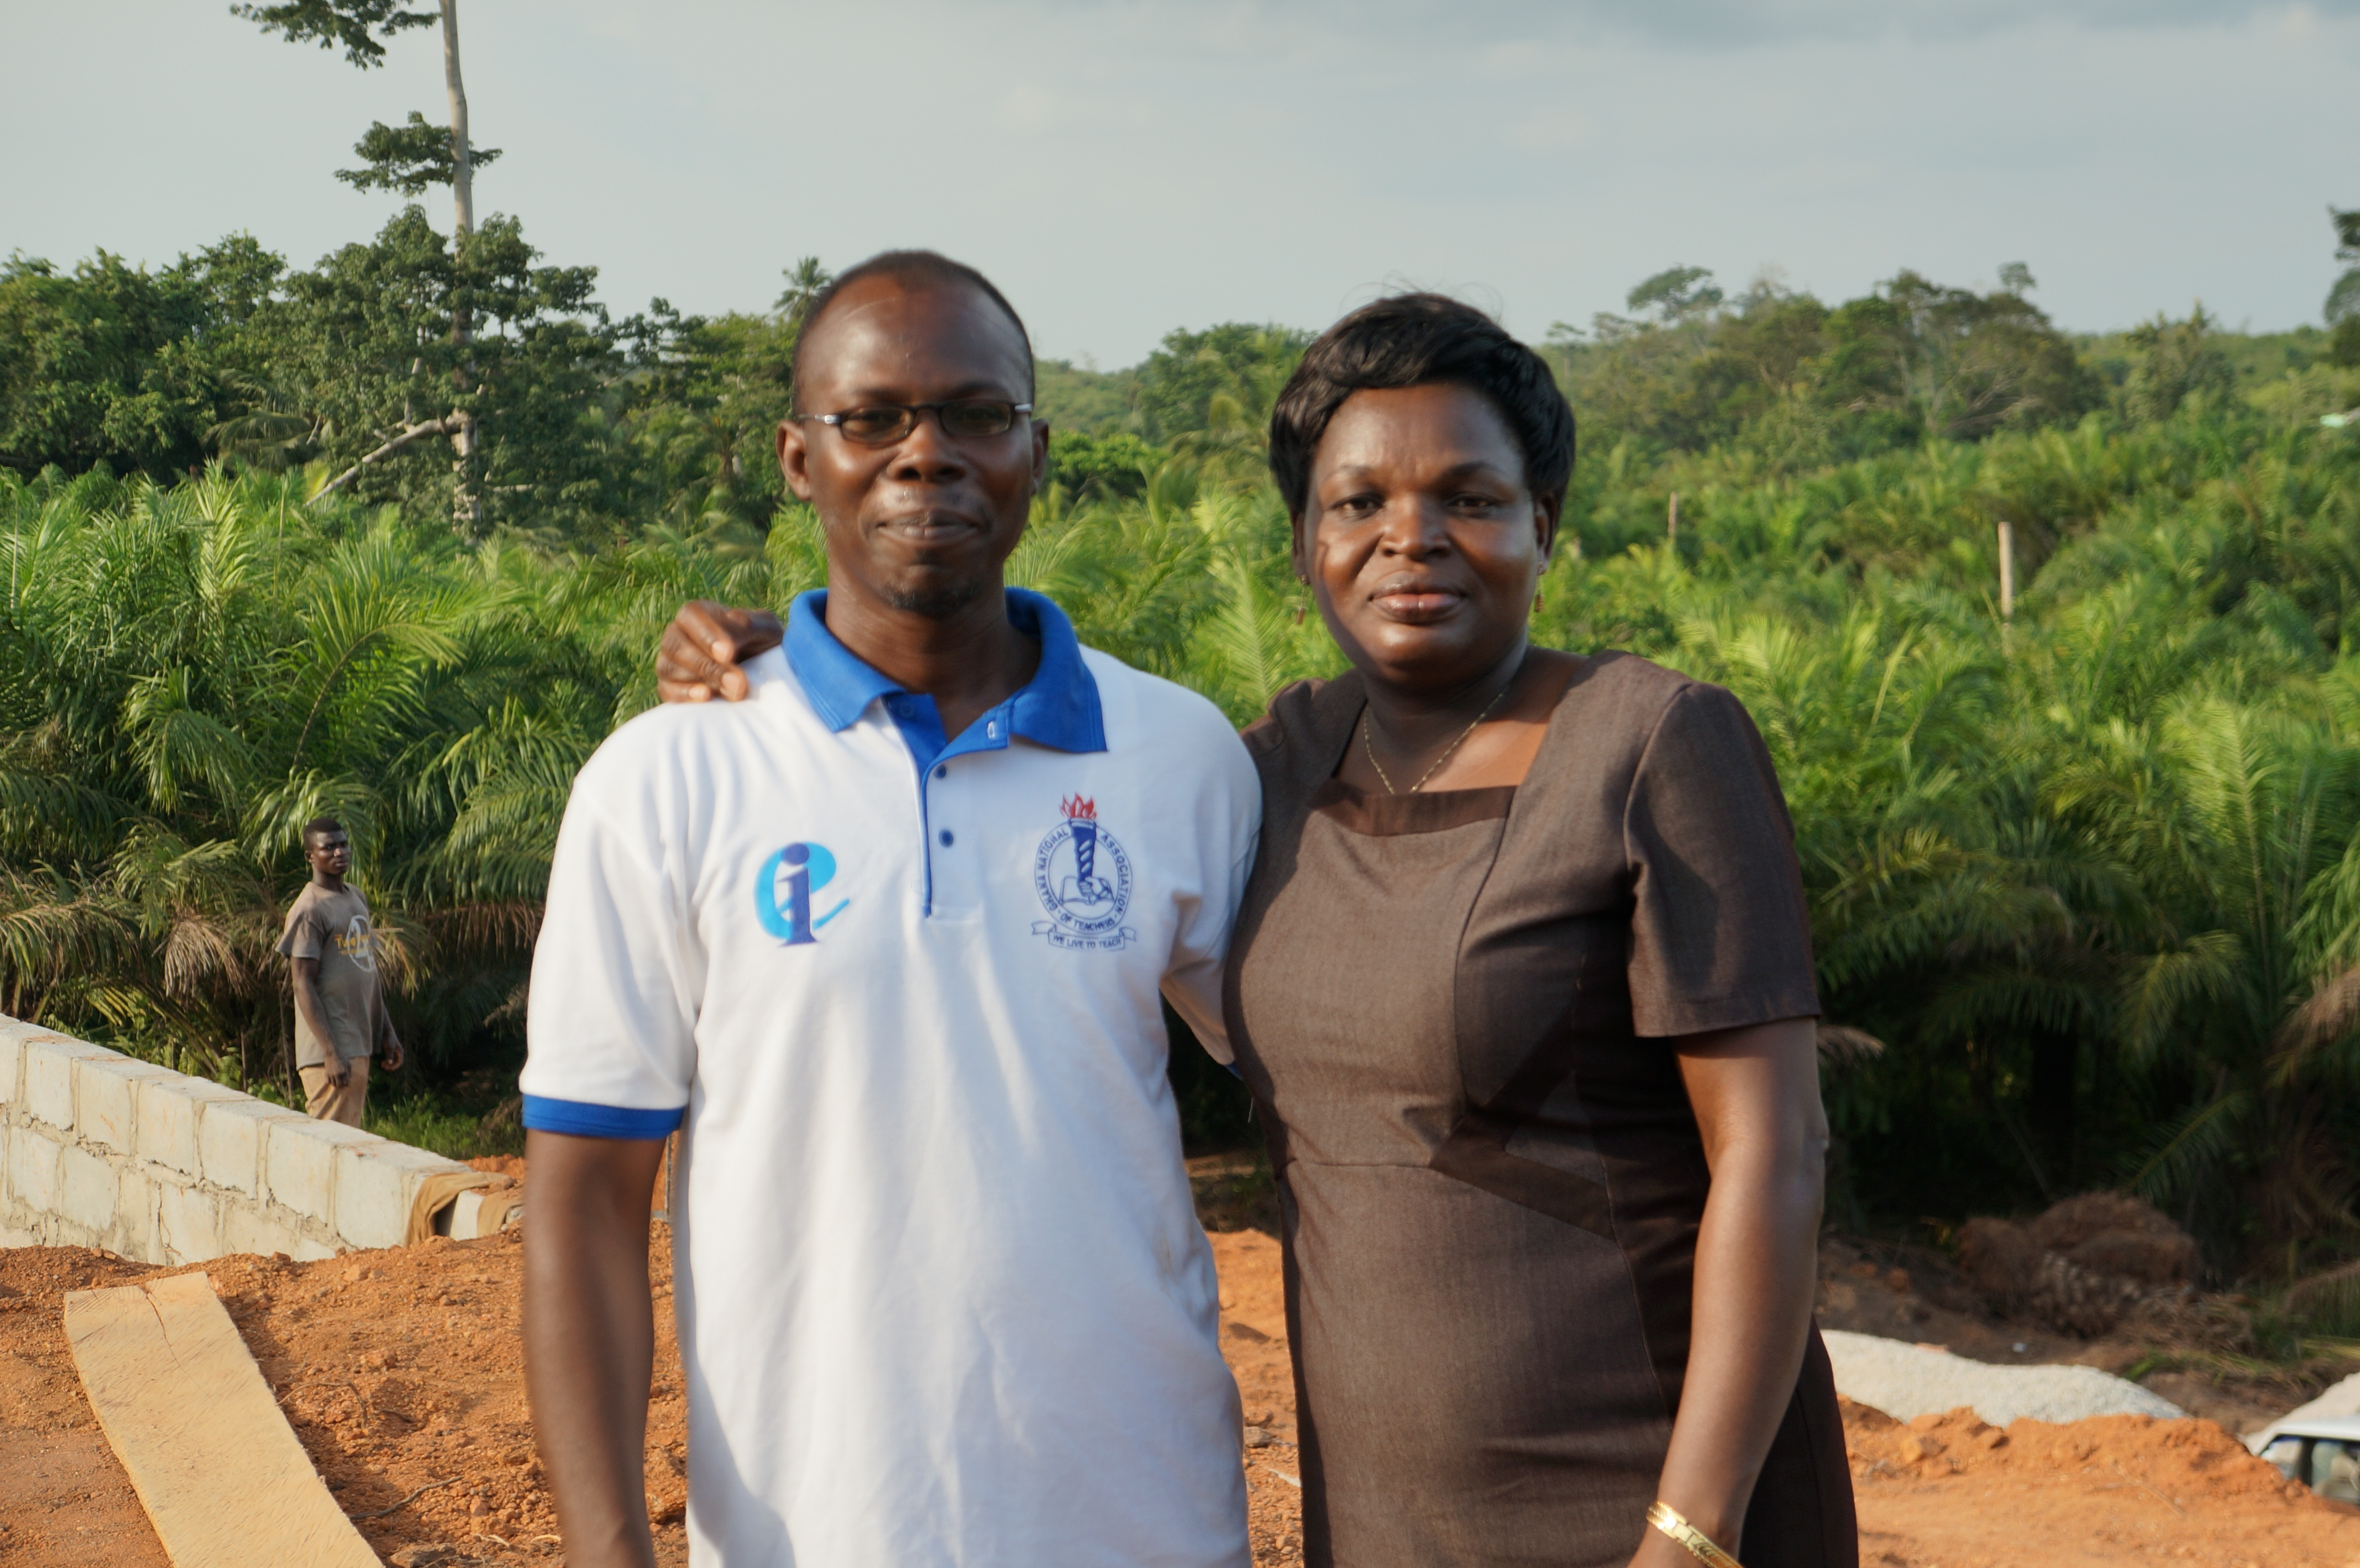 Ebenezer and Comfort - the founders of Love and Care Children's home